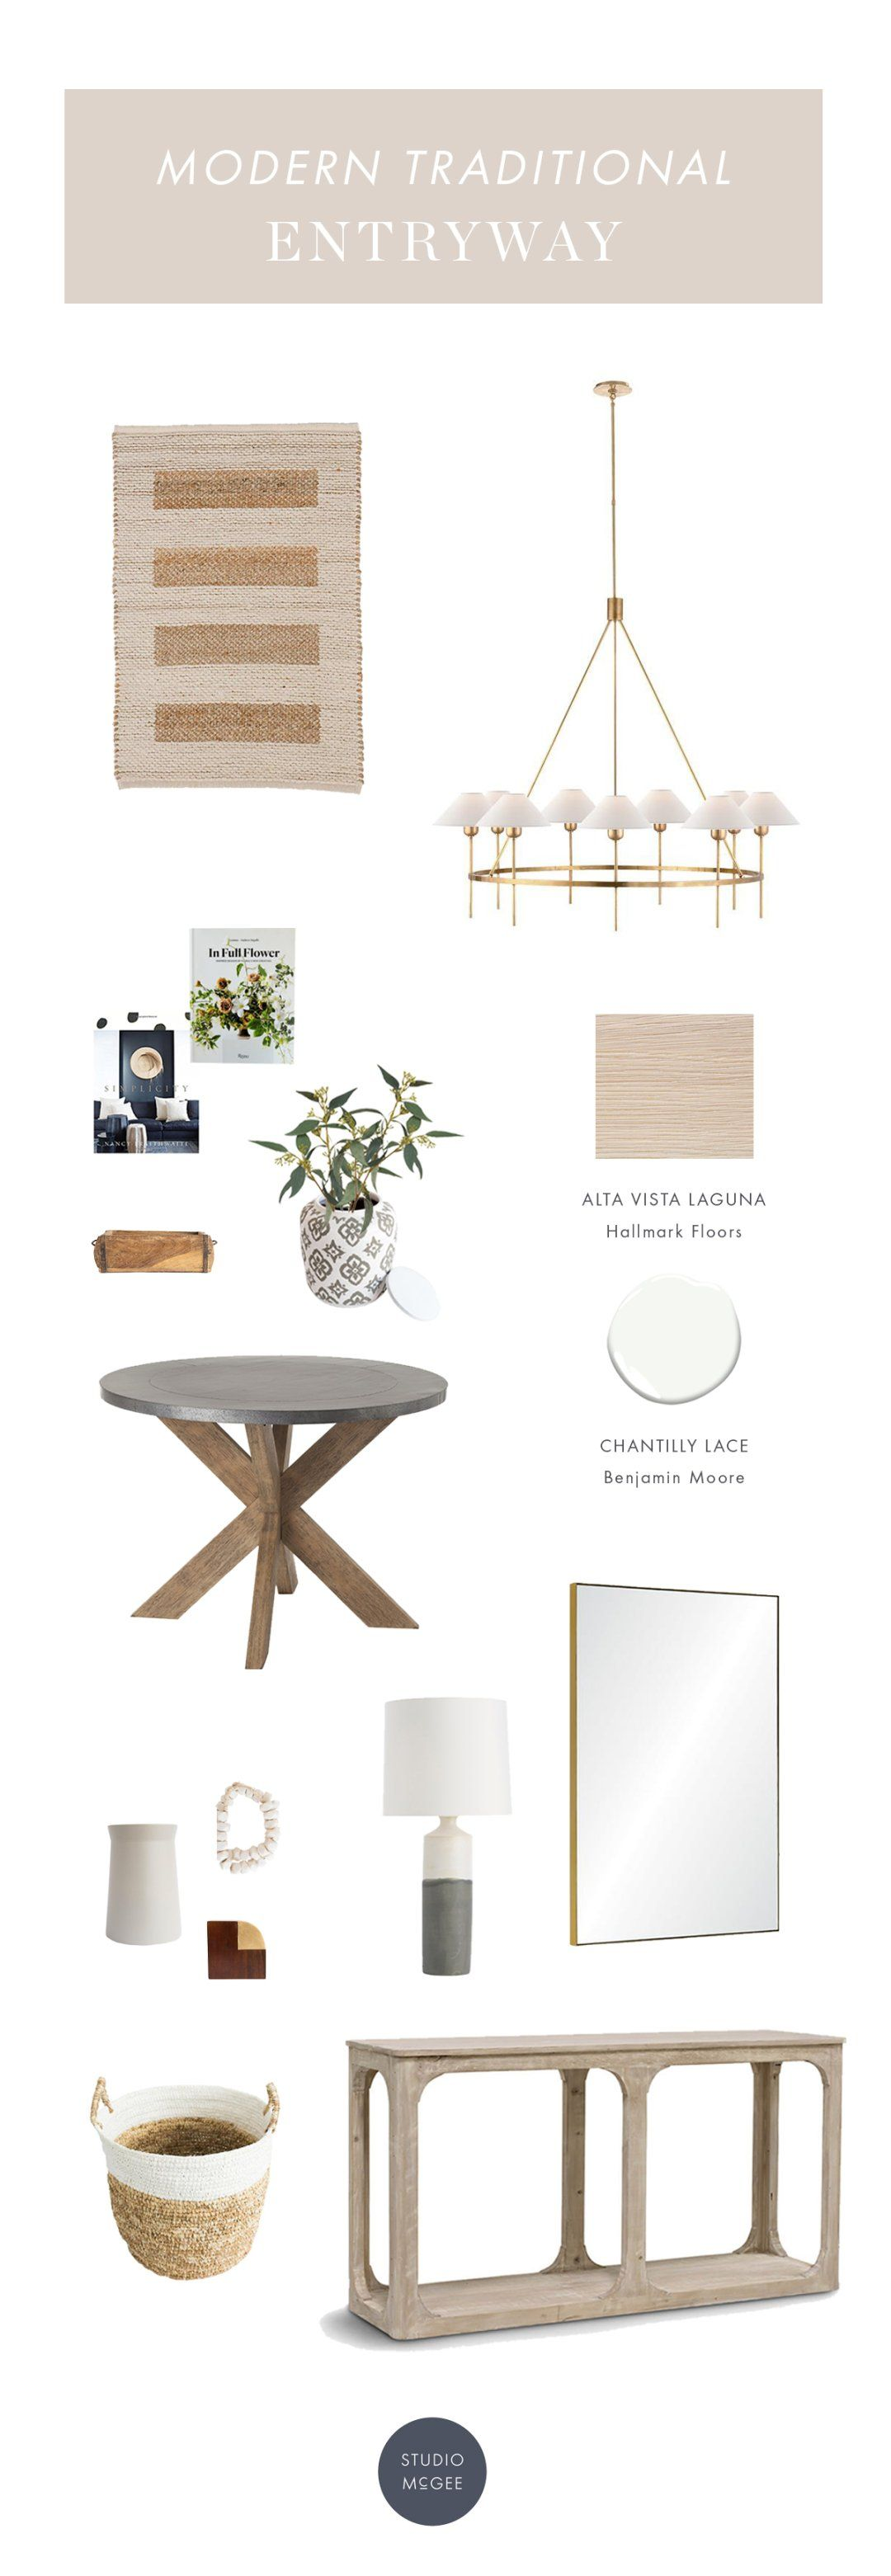 Get the look: a modern traditional entryway | Riverbottoms Entryway Webisode